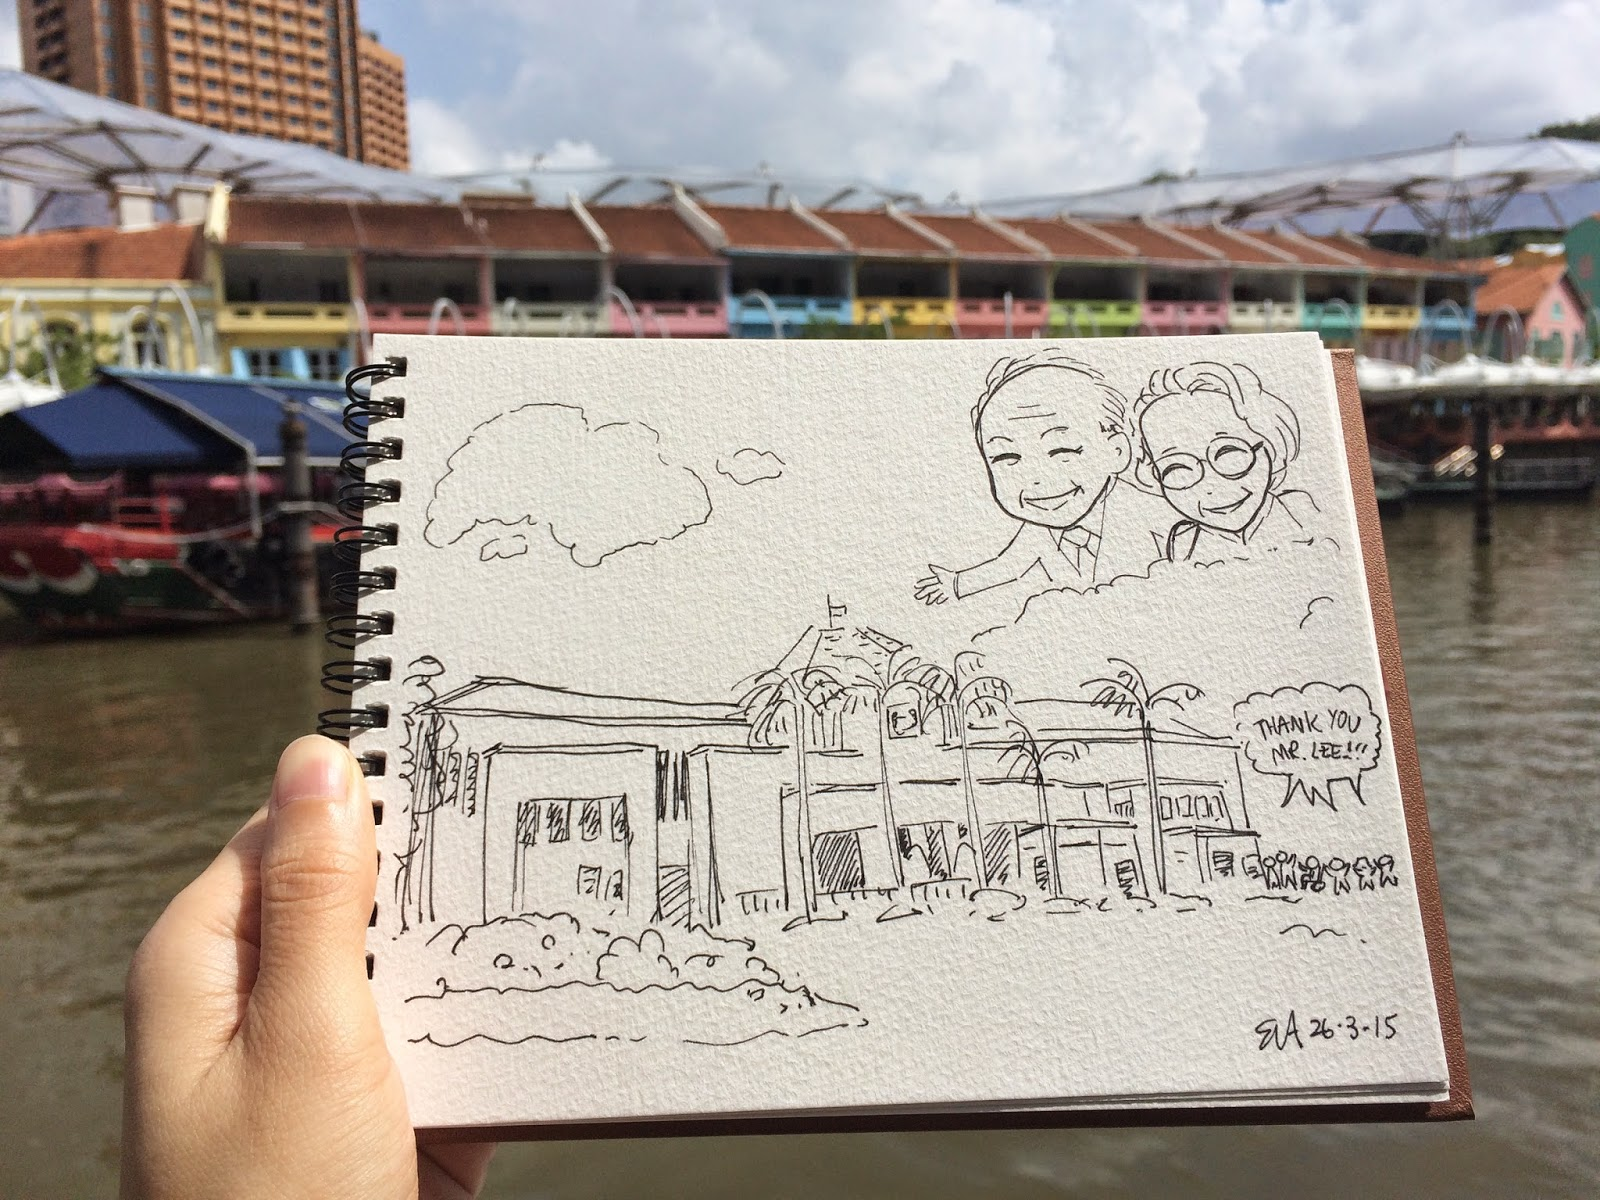 Tribute to Mr Lee Kuan Yew and his wife parliament house clarke quay